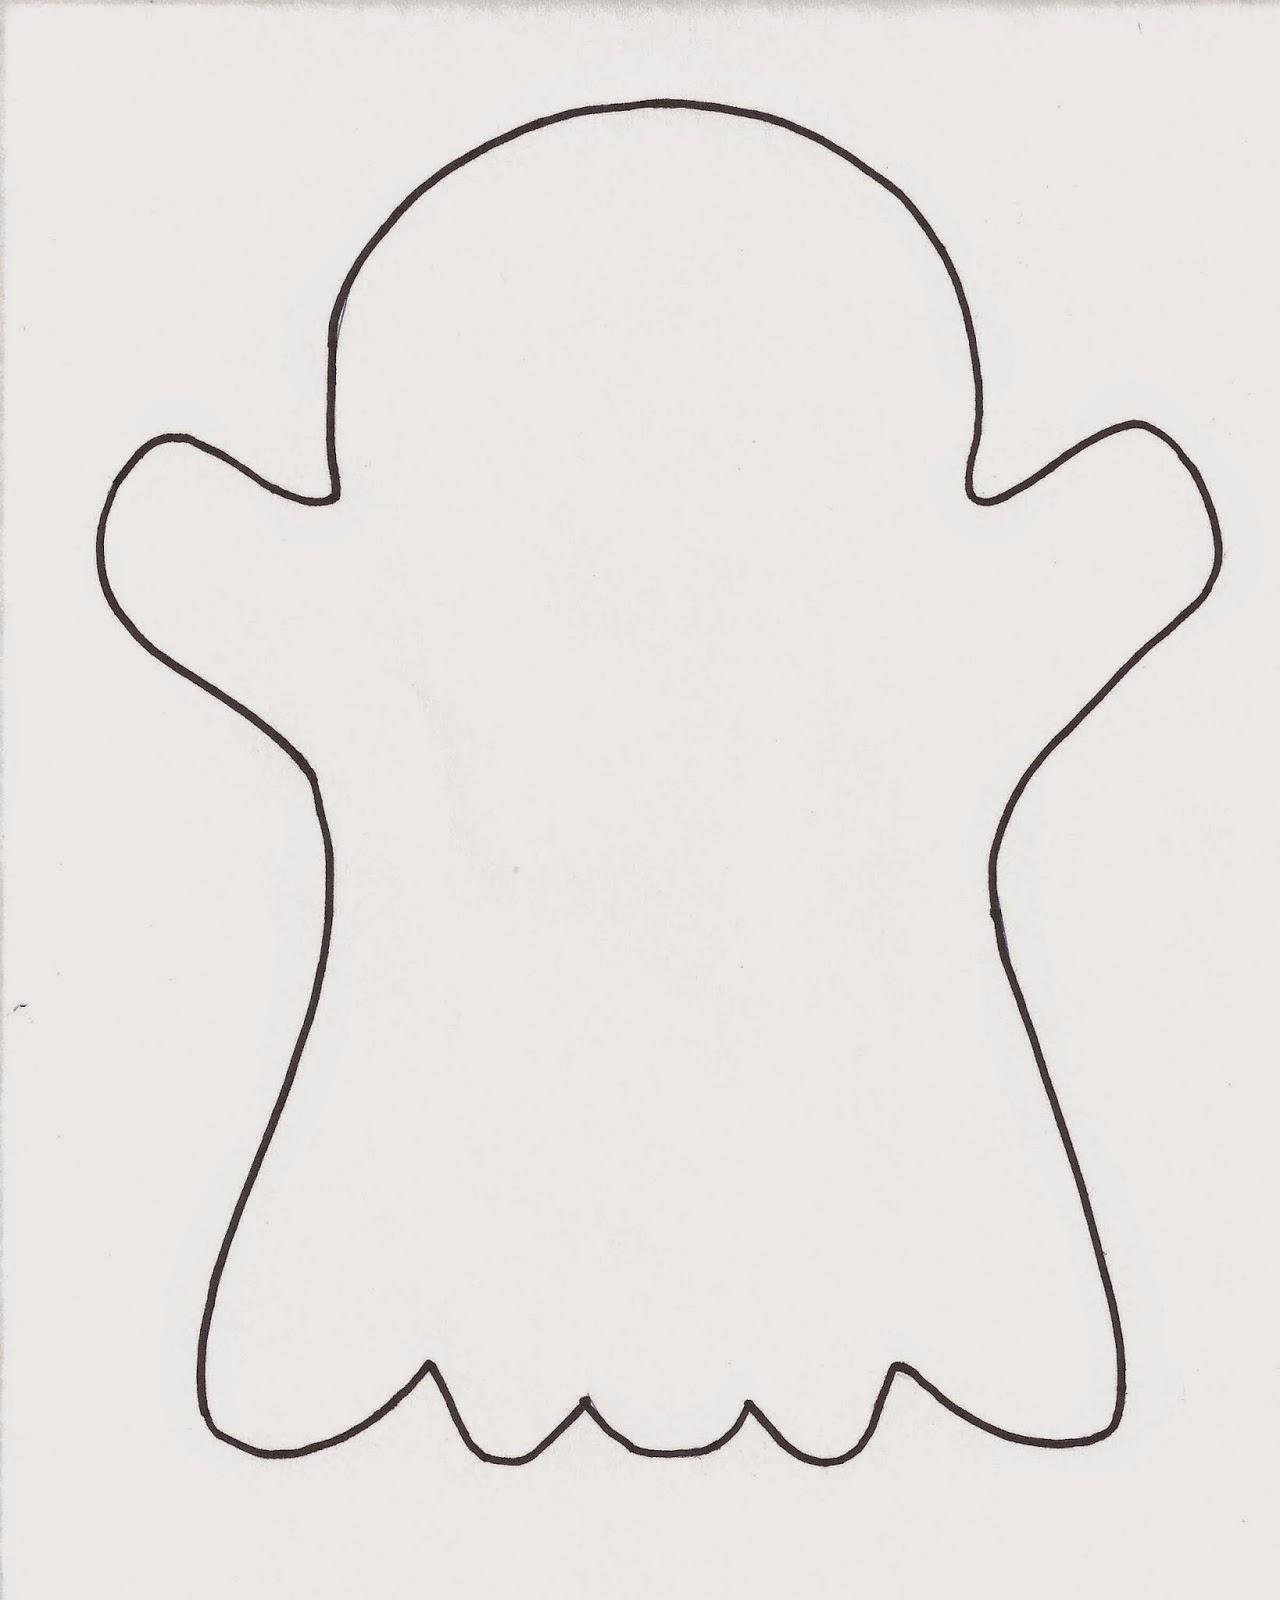 Crafts for Kids' Minds: Free Printable Ghost Template